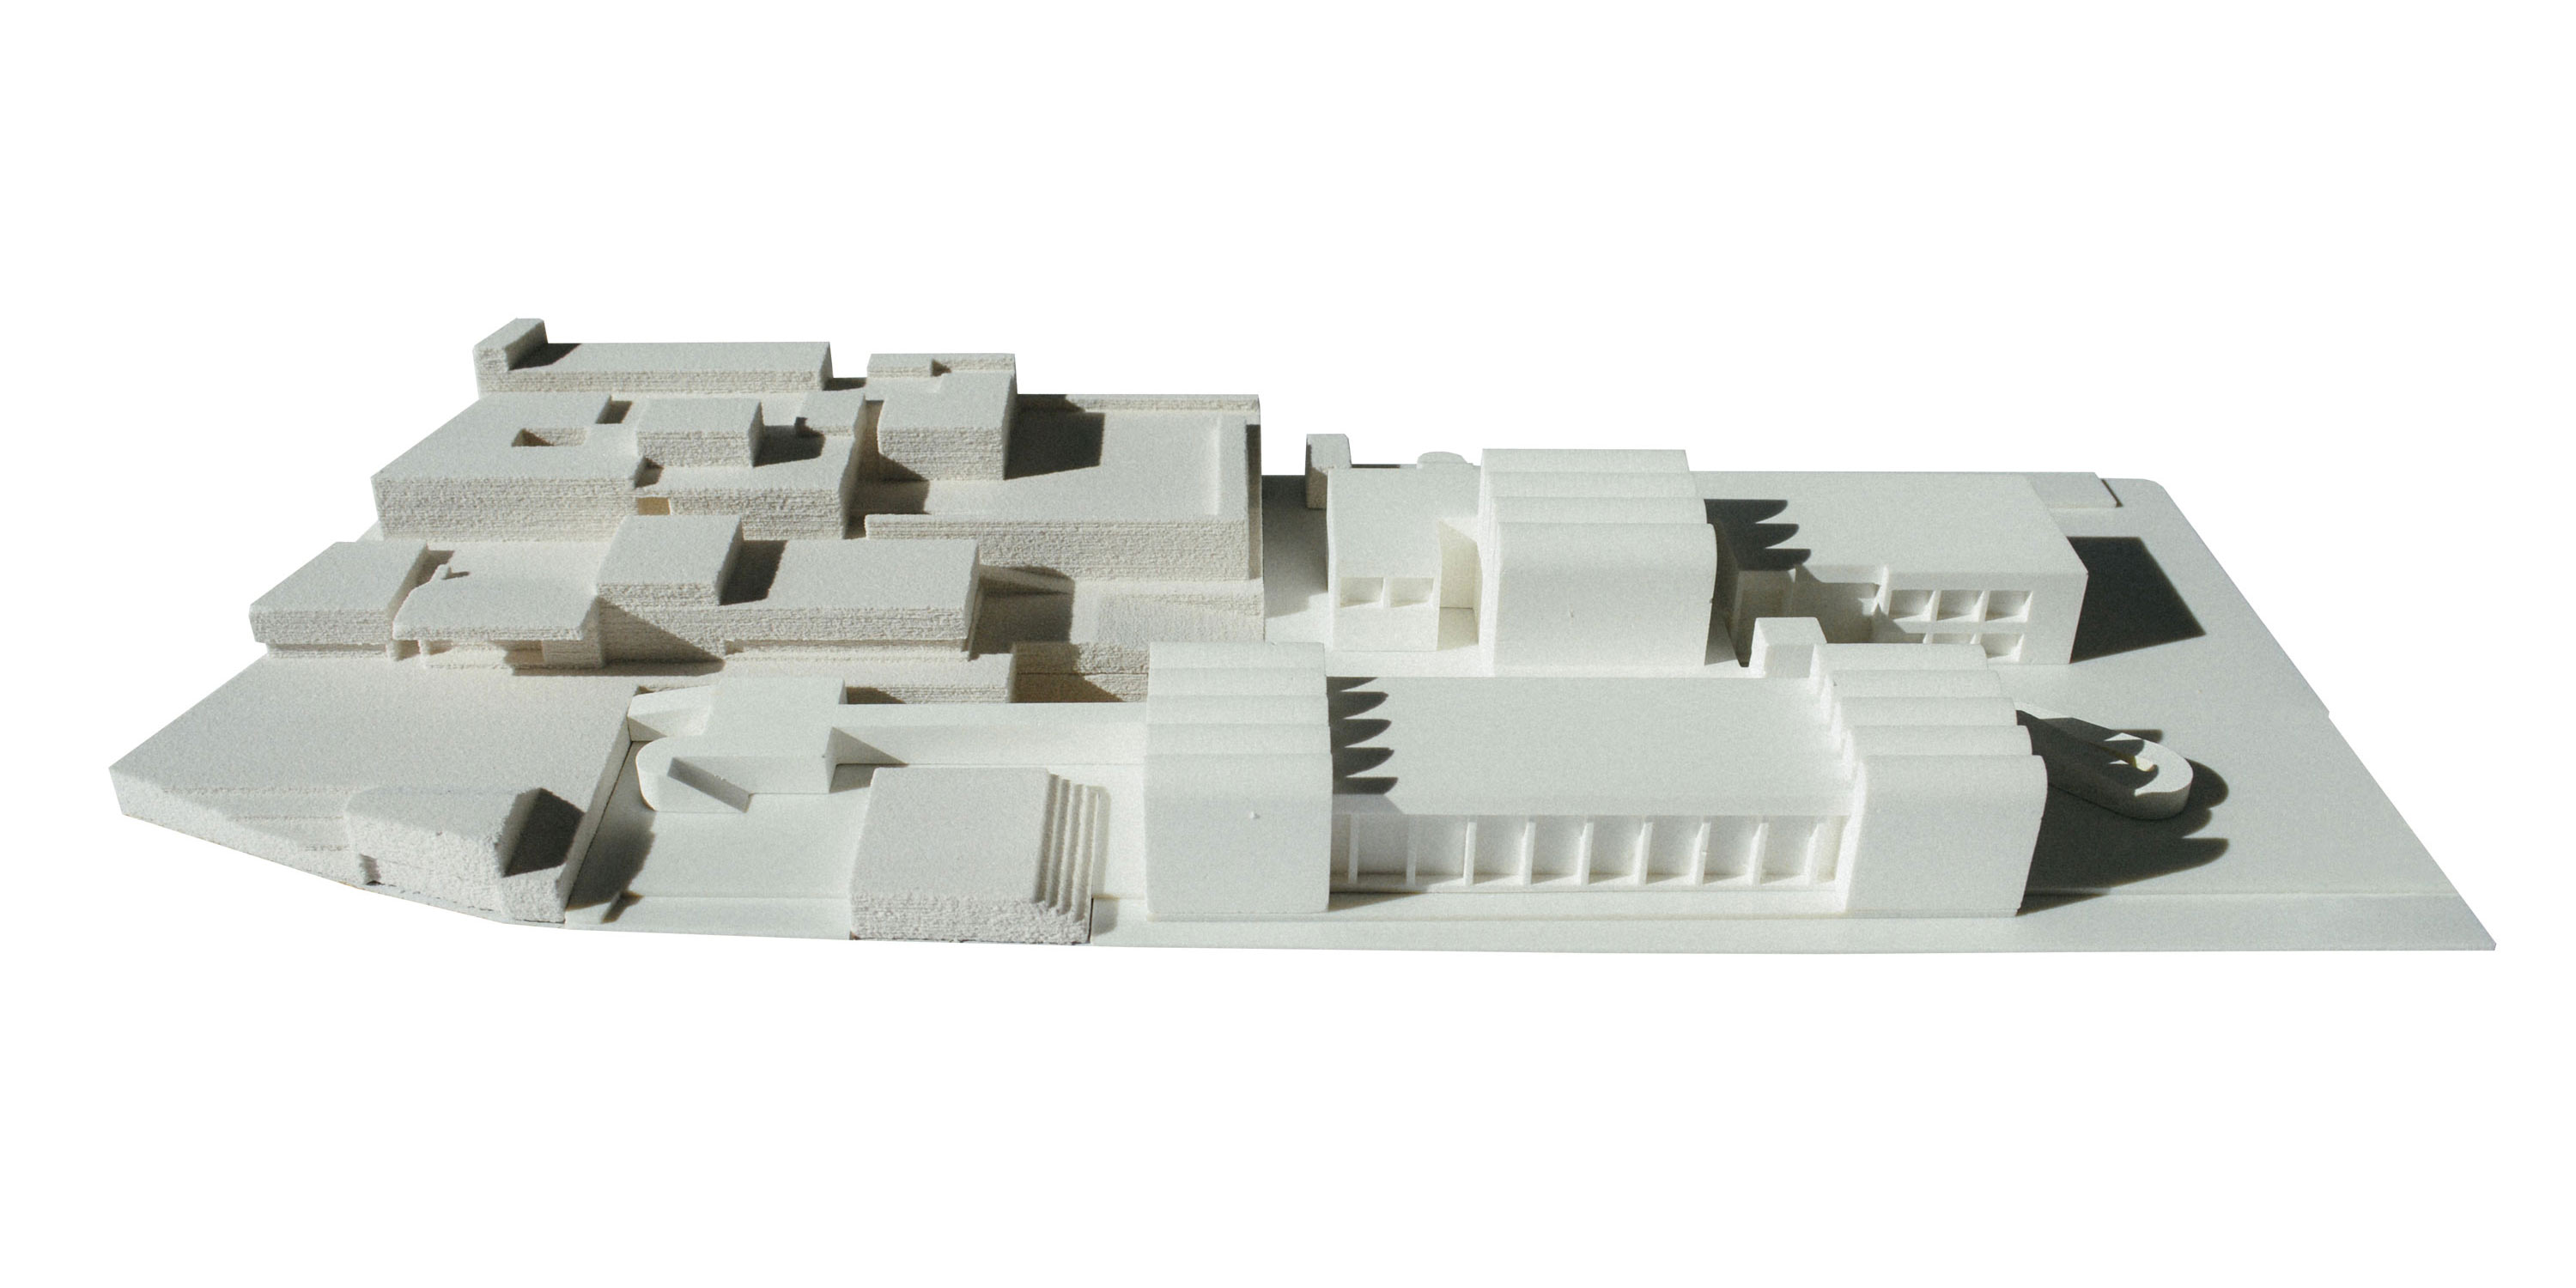 ppag_bauhausarchiv_model1